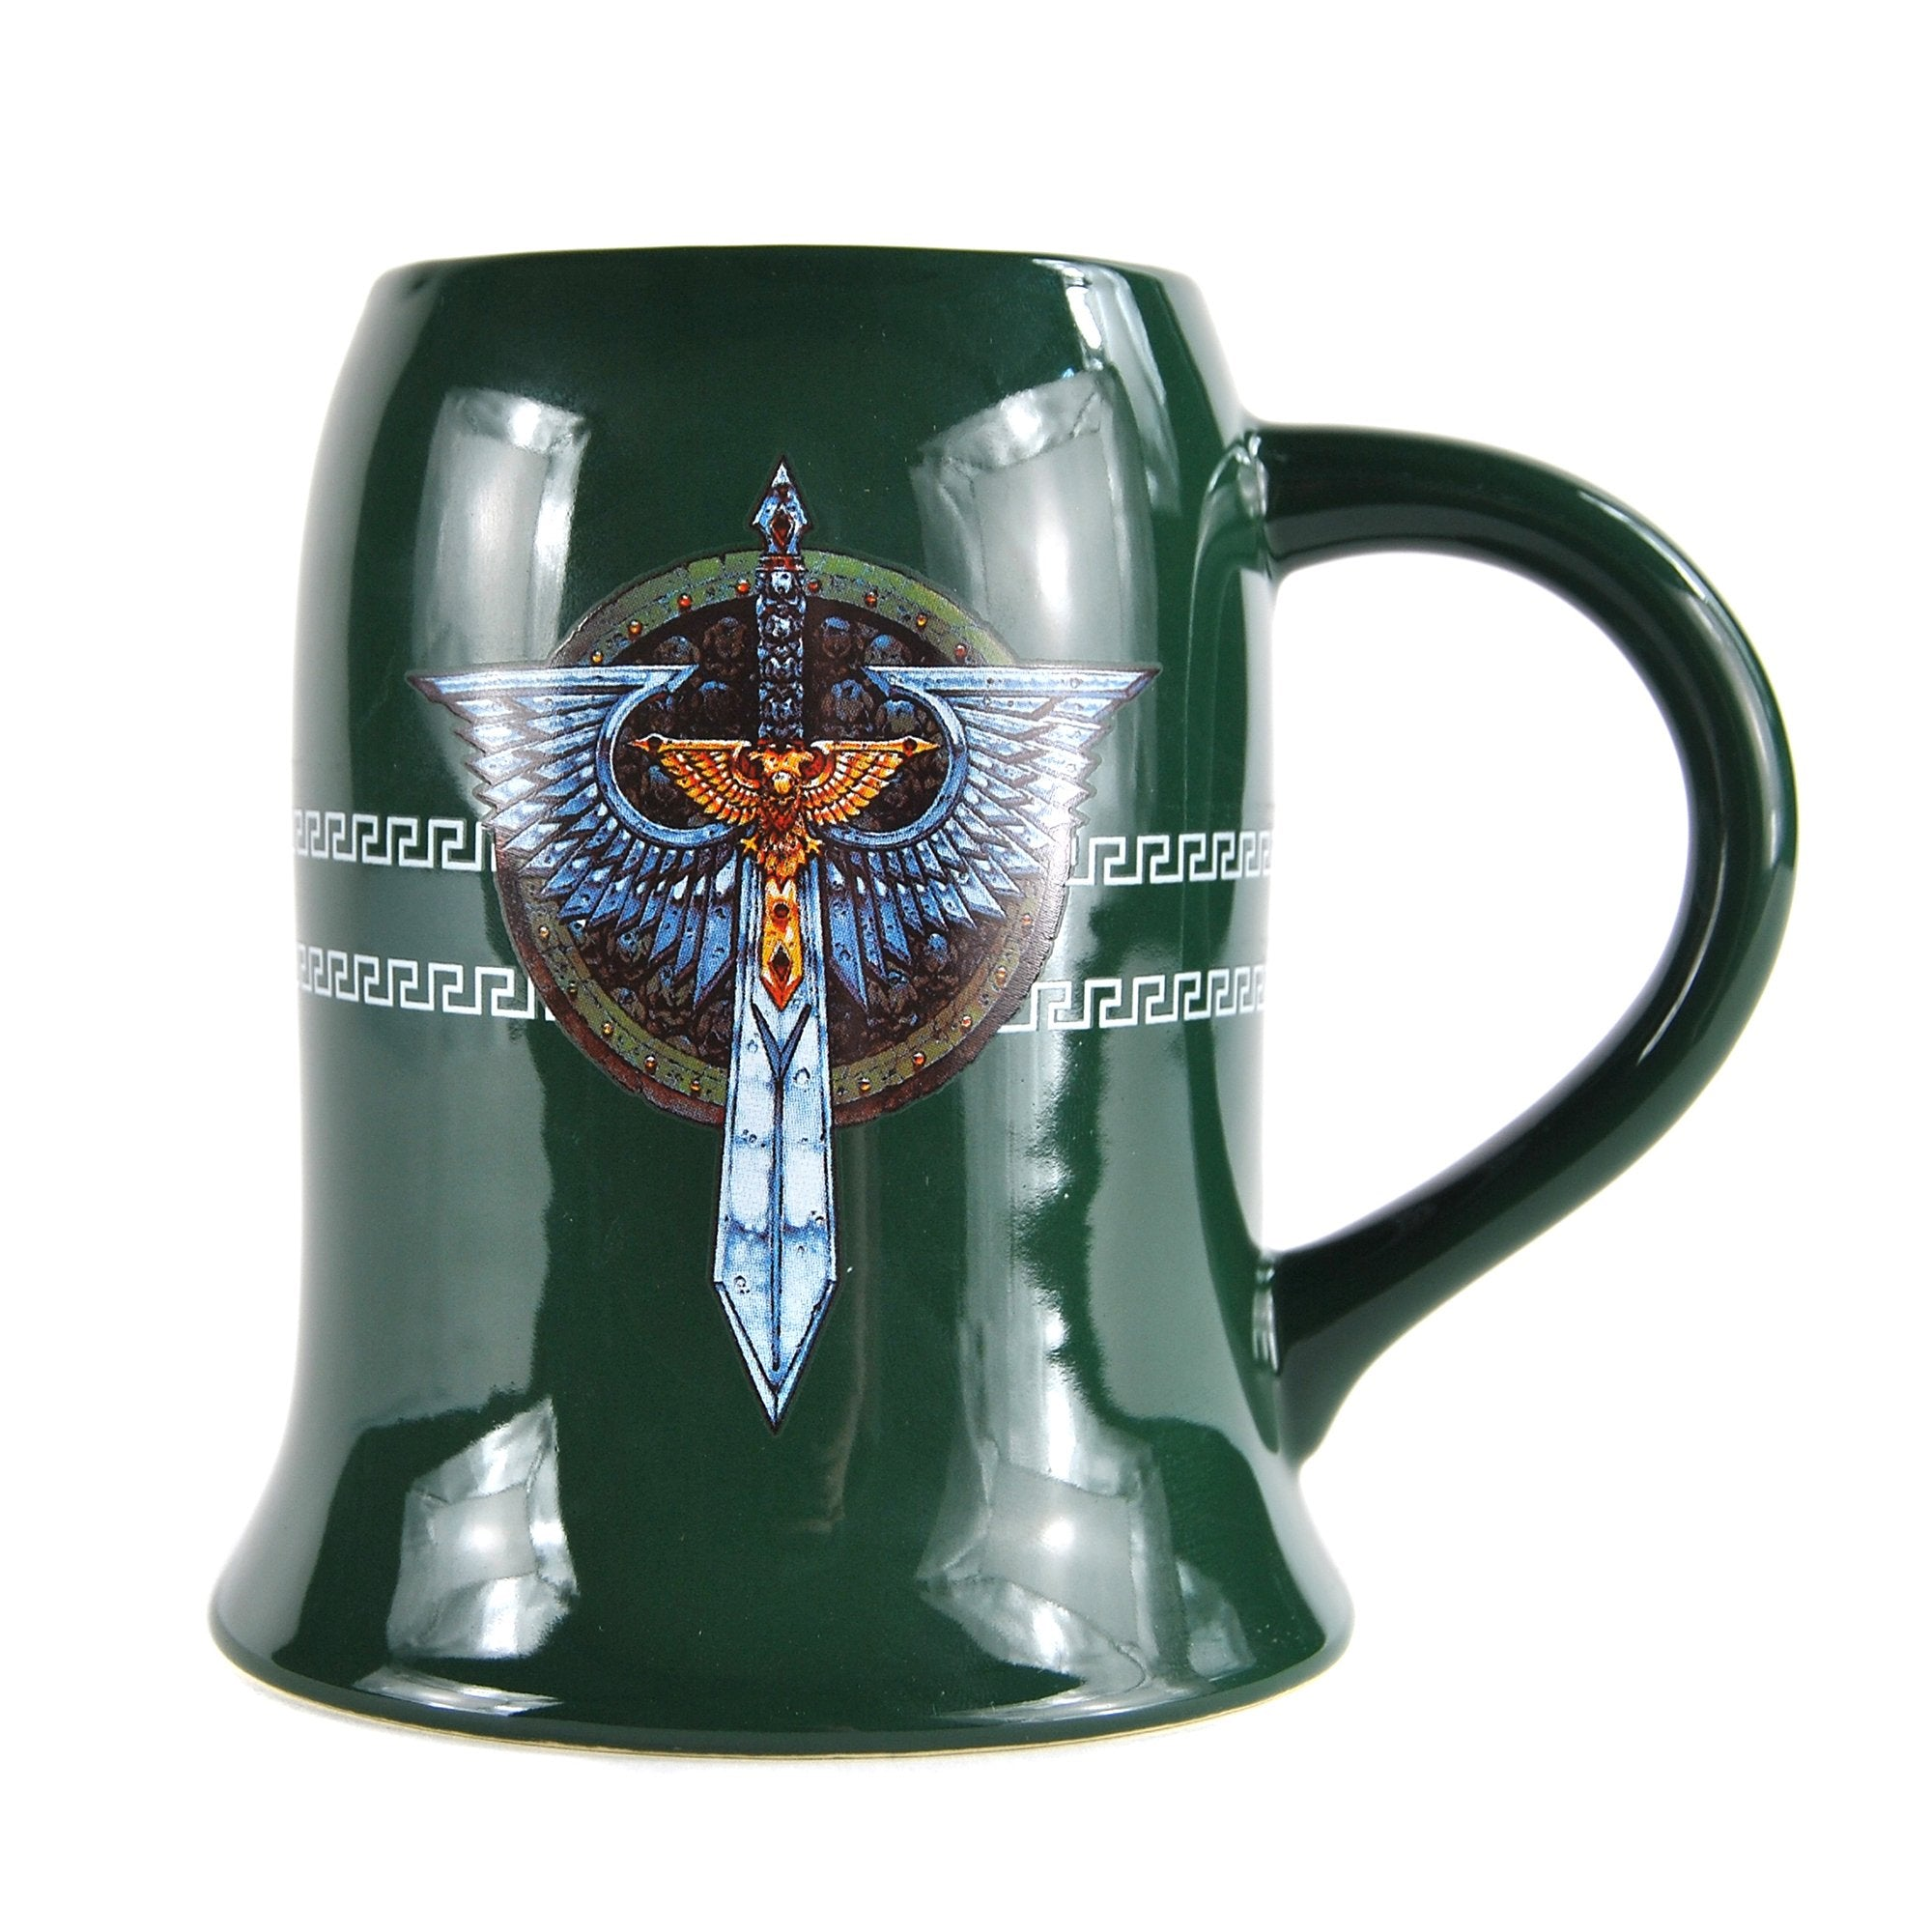 Warhammer 40,000 Tankard Mug - Dark Angels - Half Moon Bay US